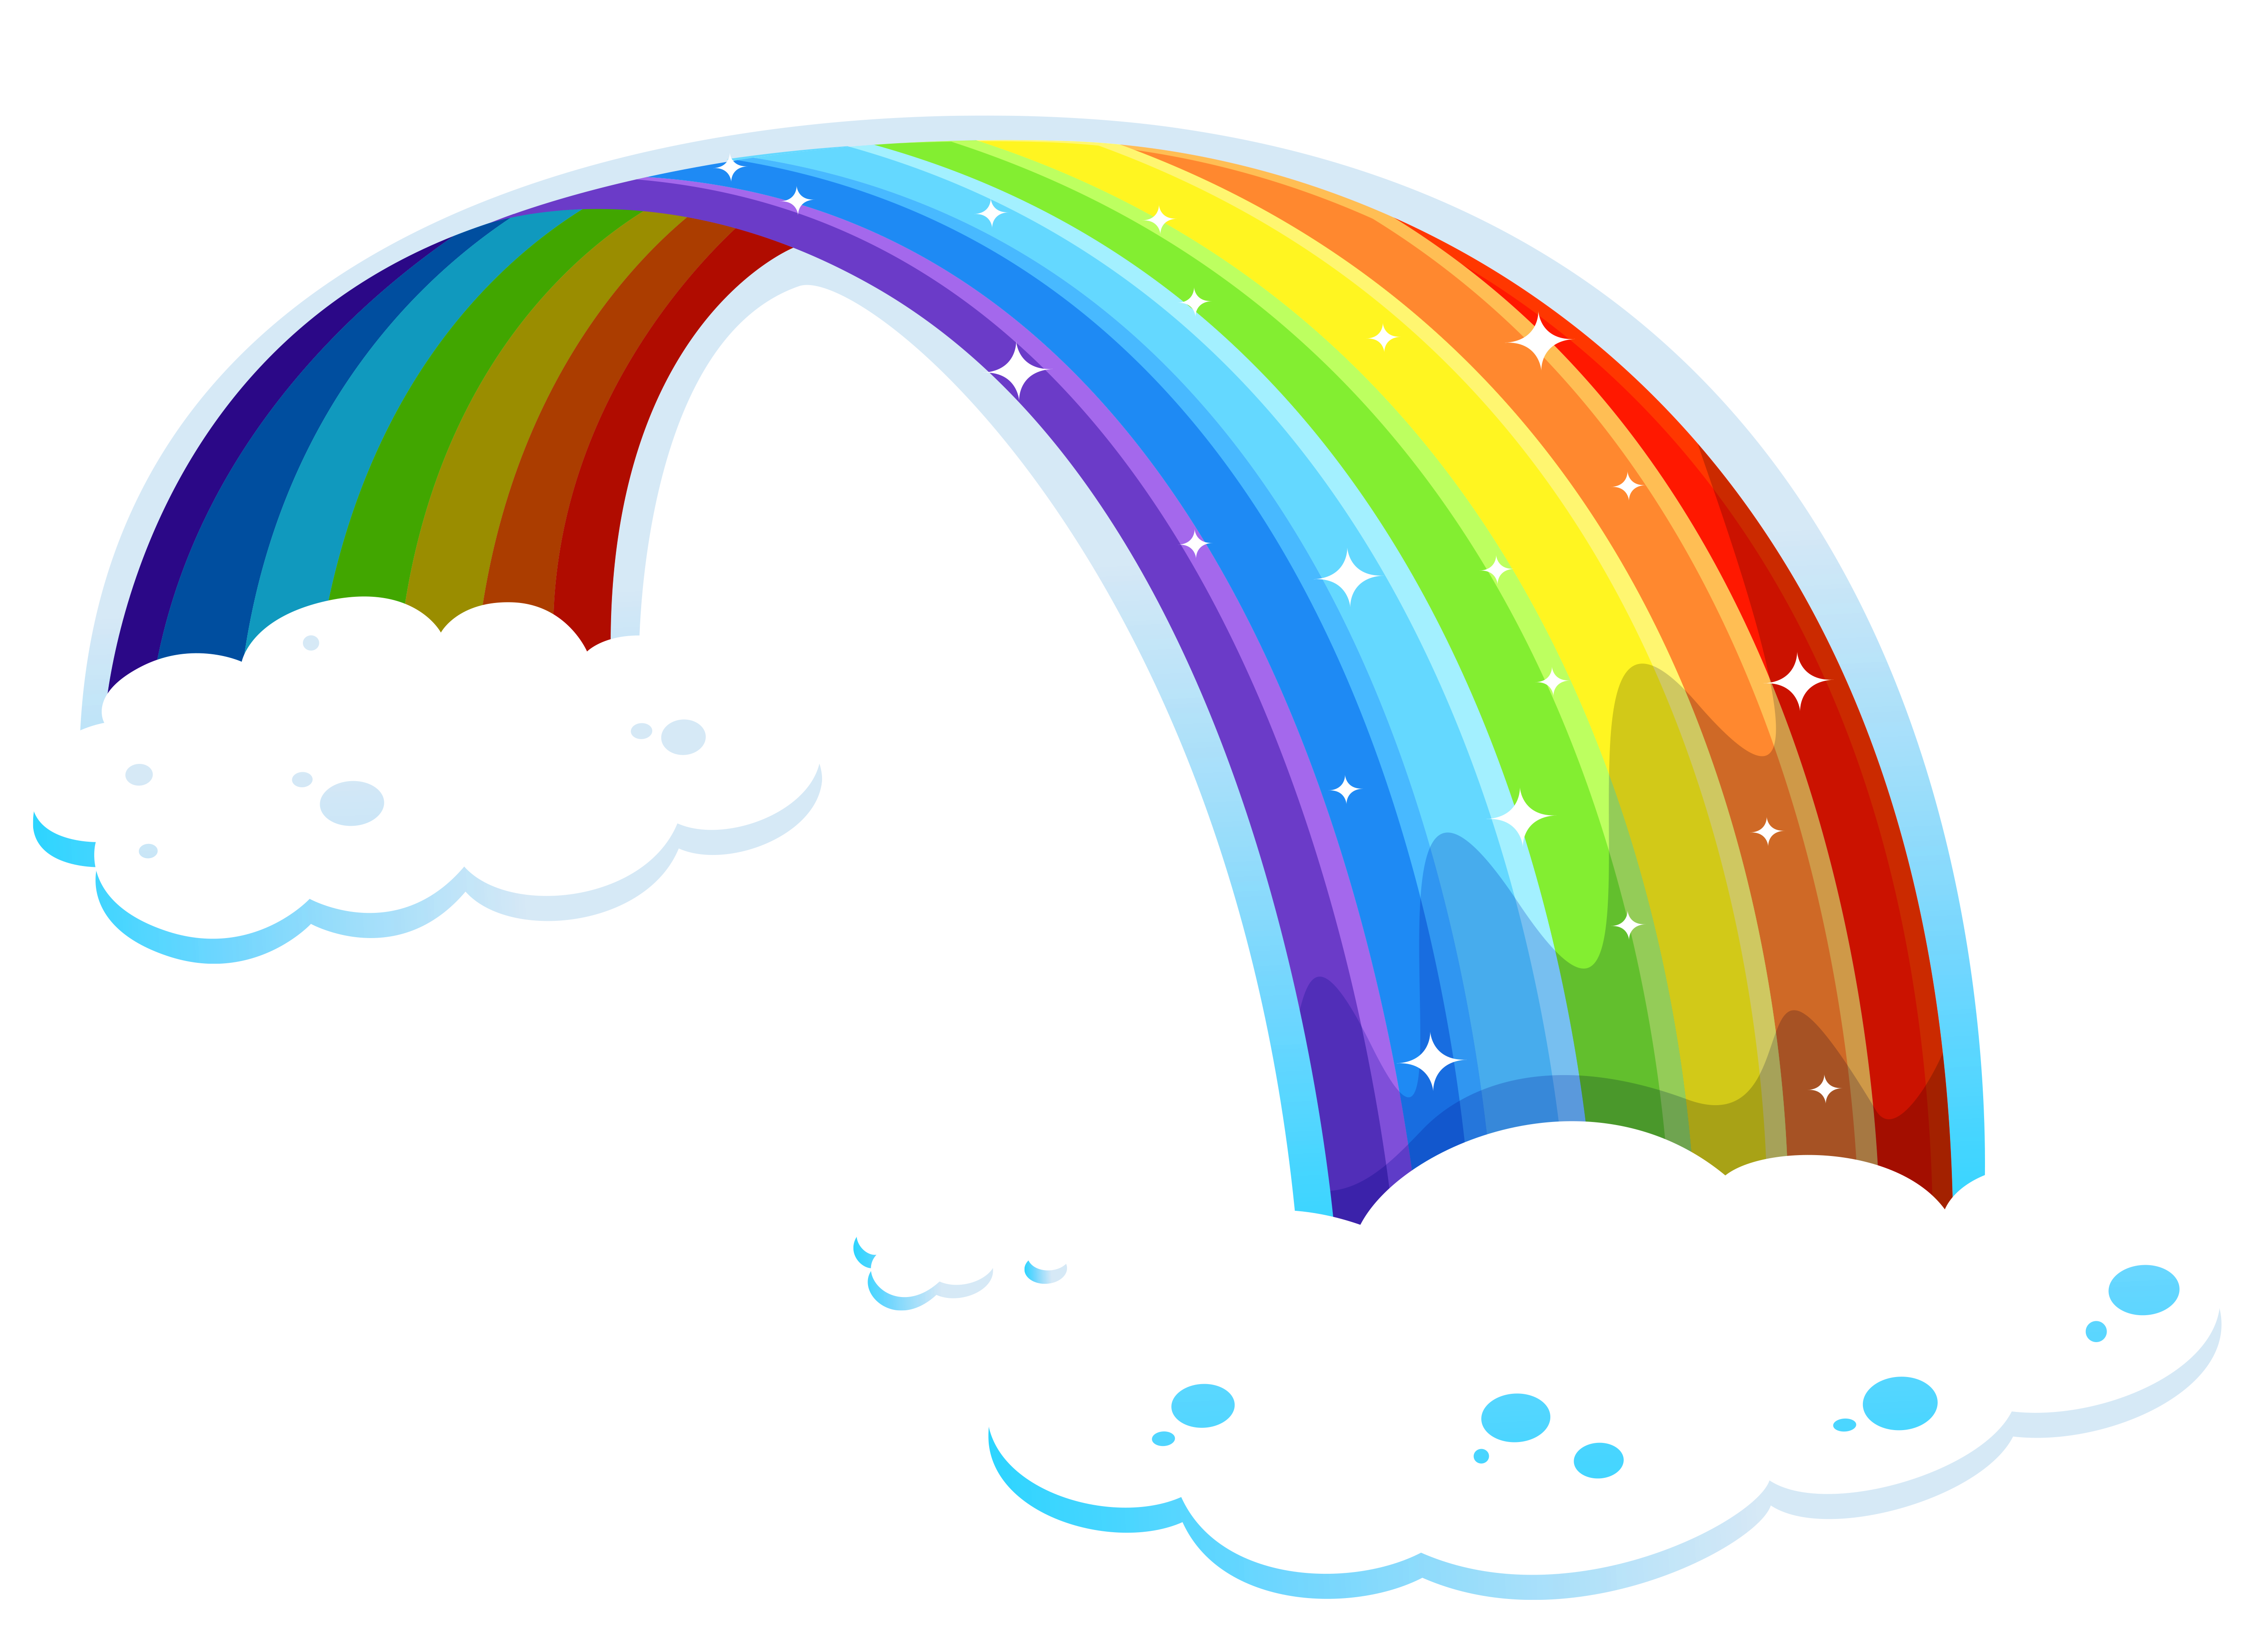 5068x3737 Rainbow With Clouds Png Clipartu200b Gallery Yopriceville